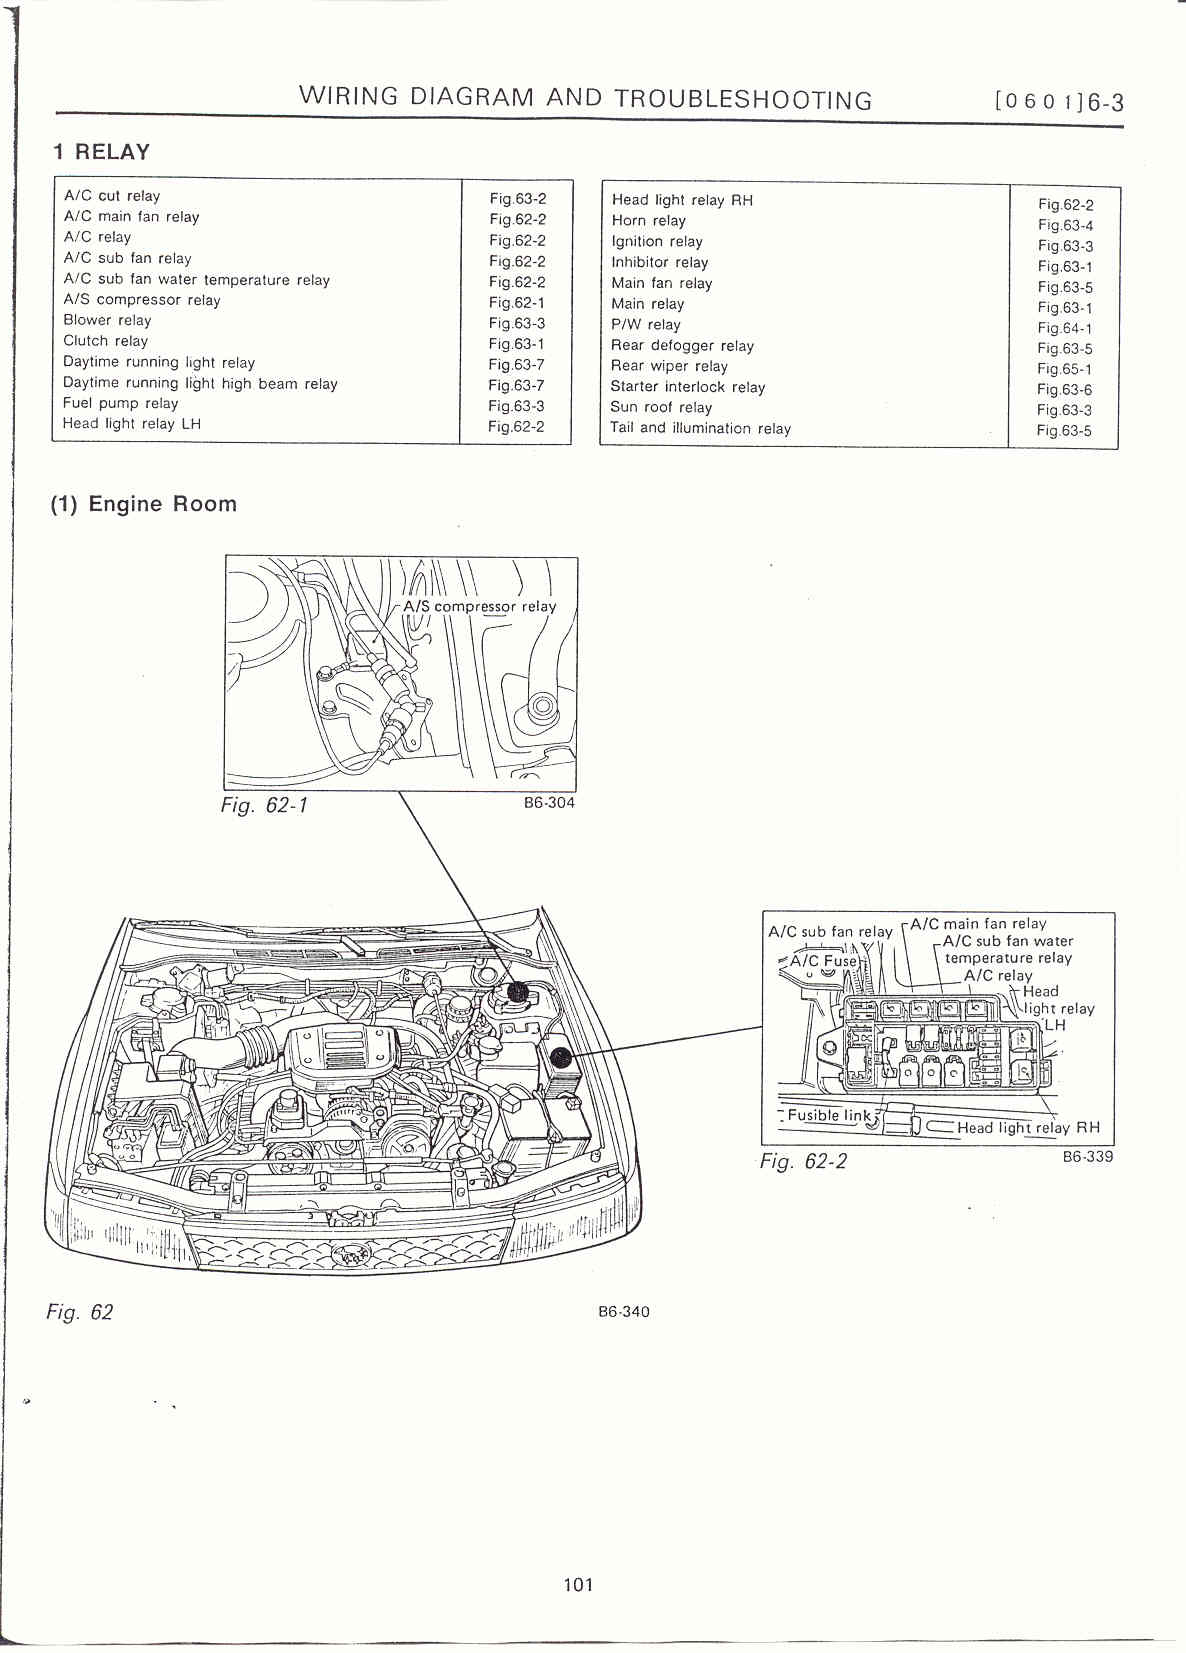 Subaru Outback Engine Room Fuse Box 35 Wiring Diagram Images Rx8 Bay 6 3 Electrical Unit Location02 Surrealmirage Legacy Swap Info Notes